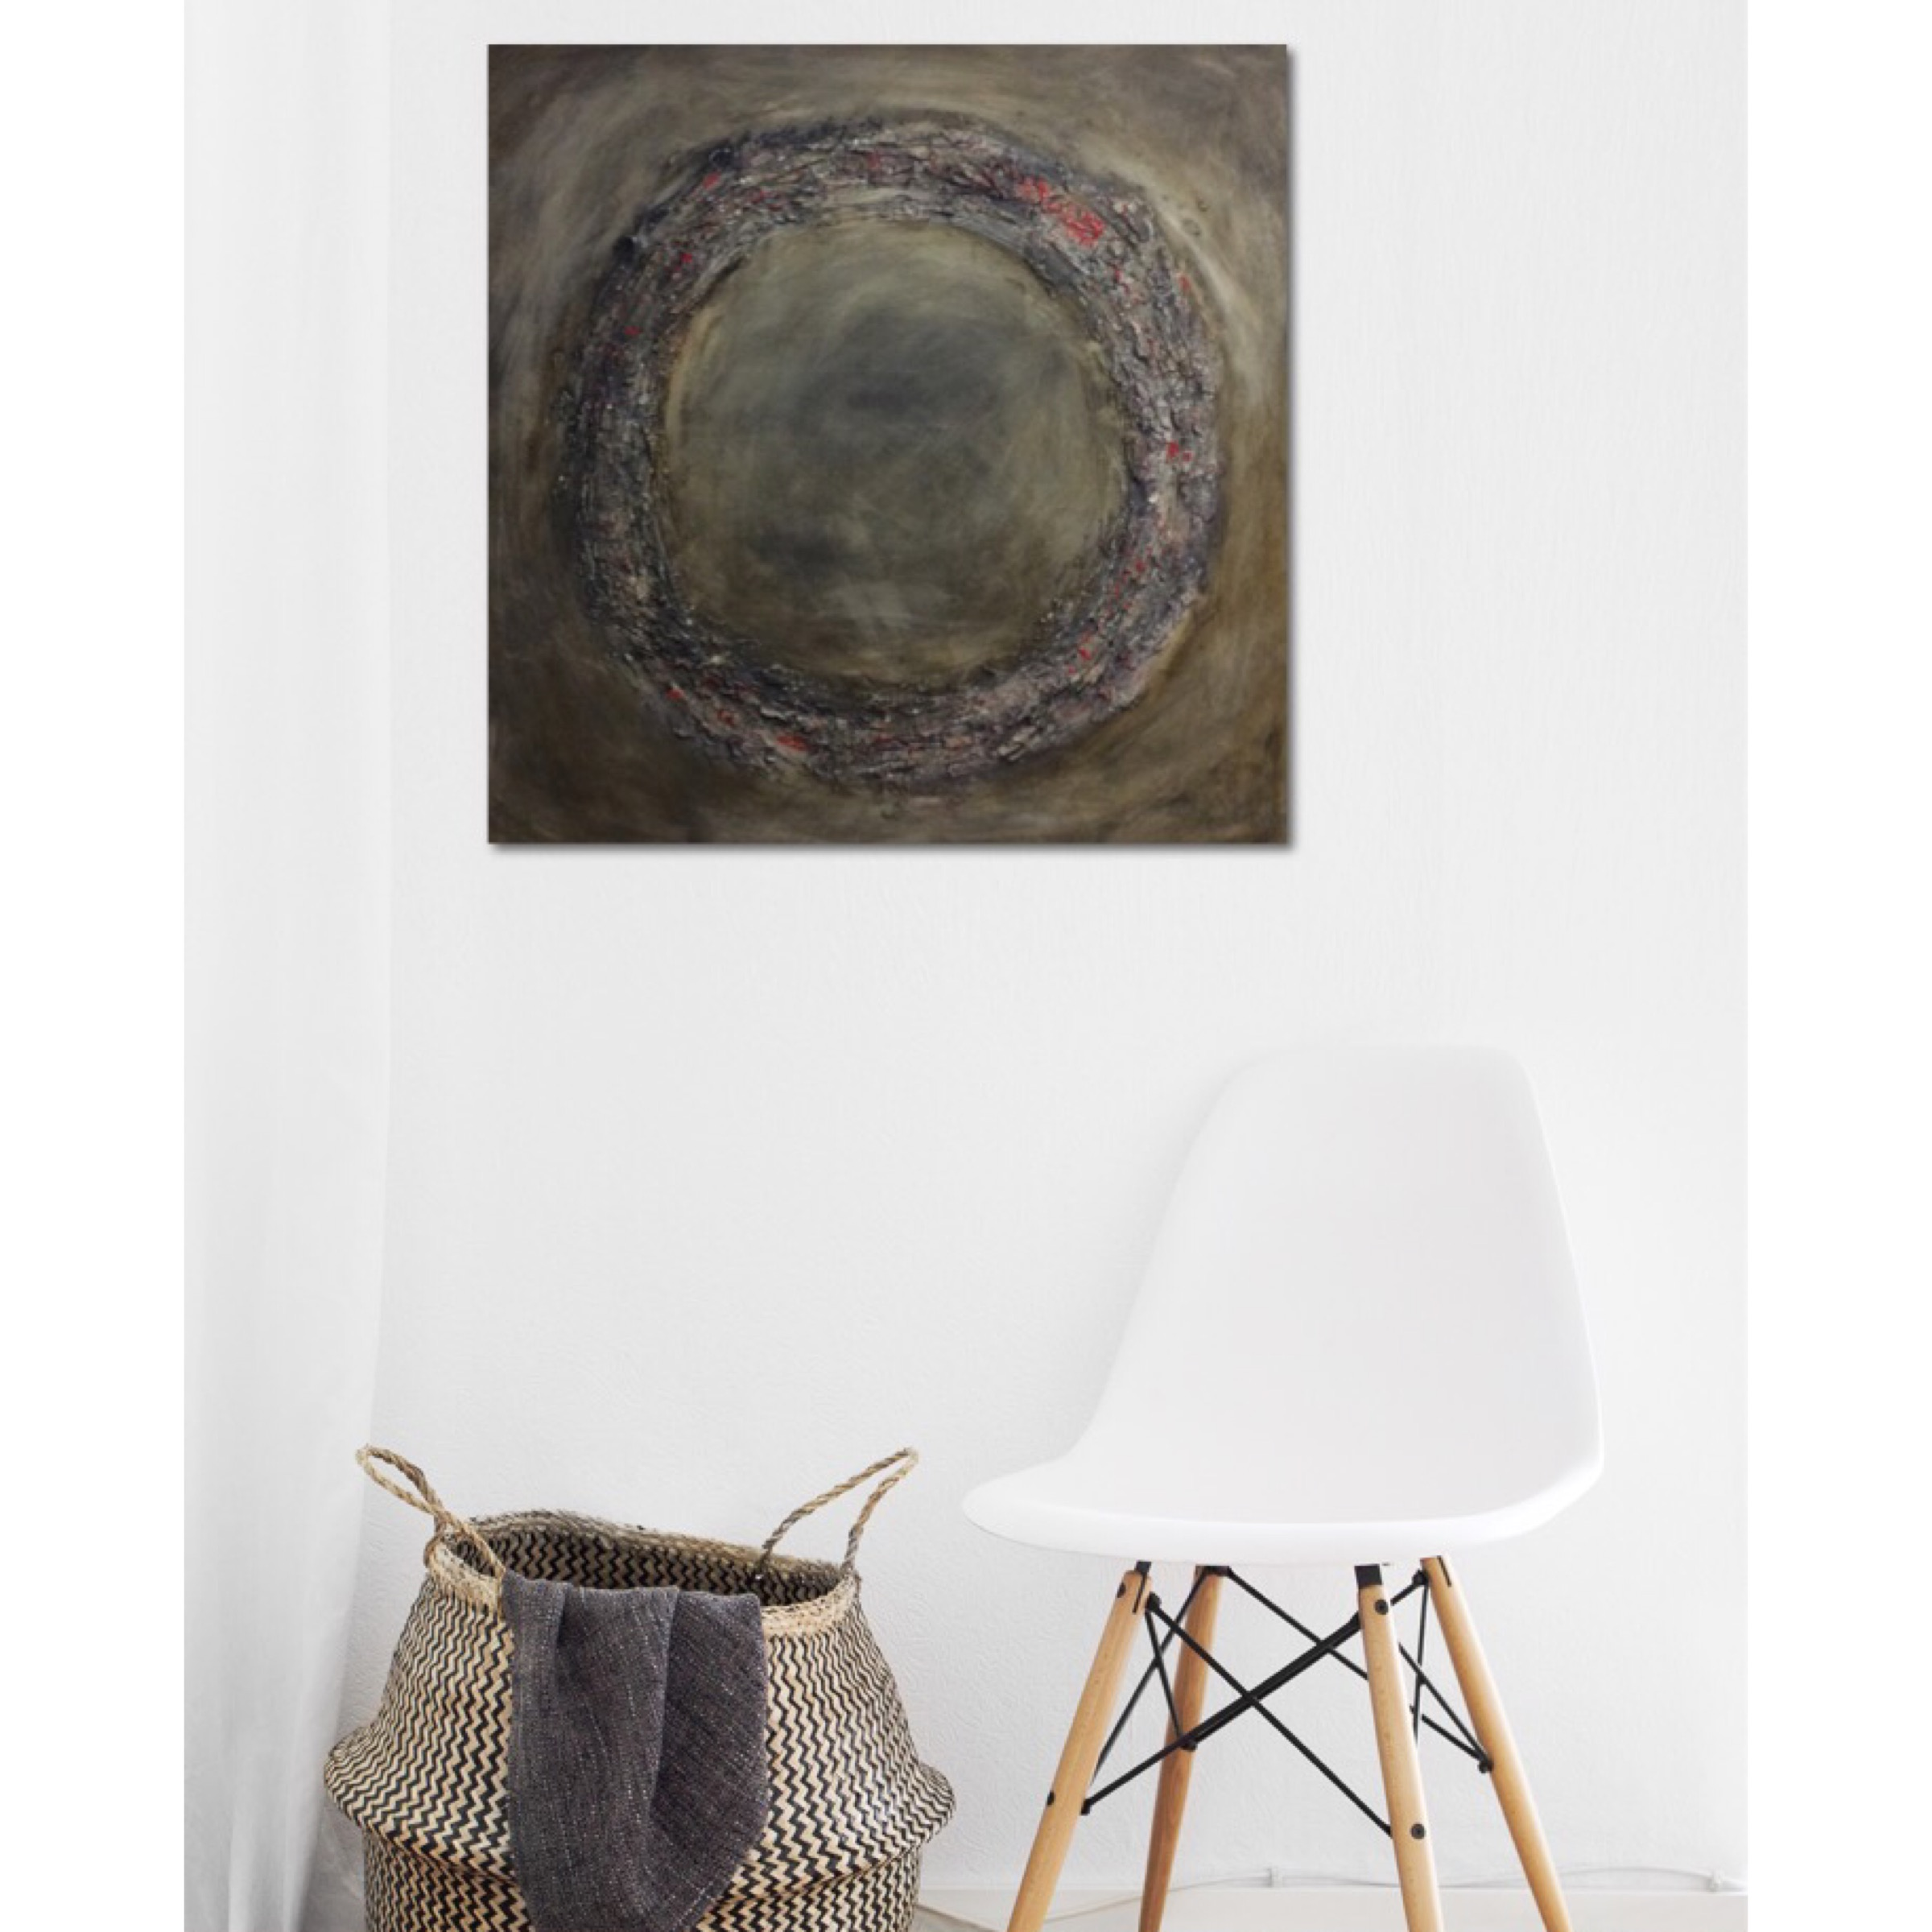 Interior design: Square textured abstract painting in neutral colors and a dash of red